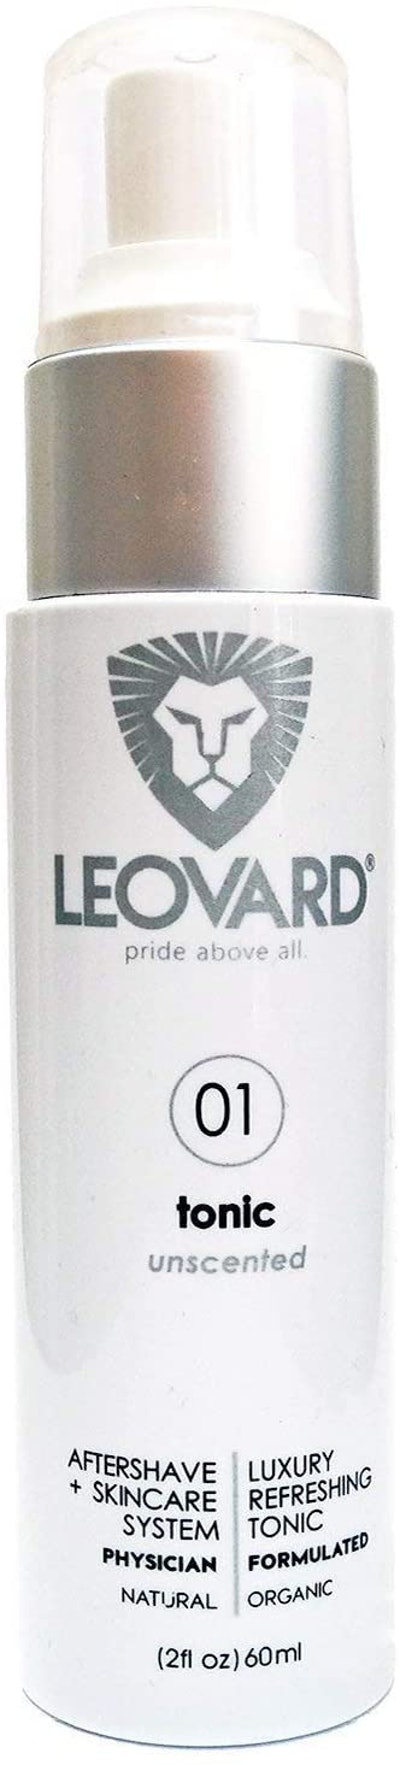 Leovard Aftershave Tonic